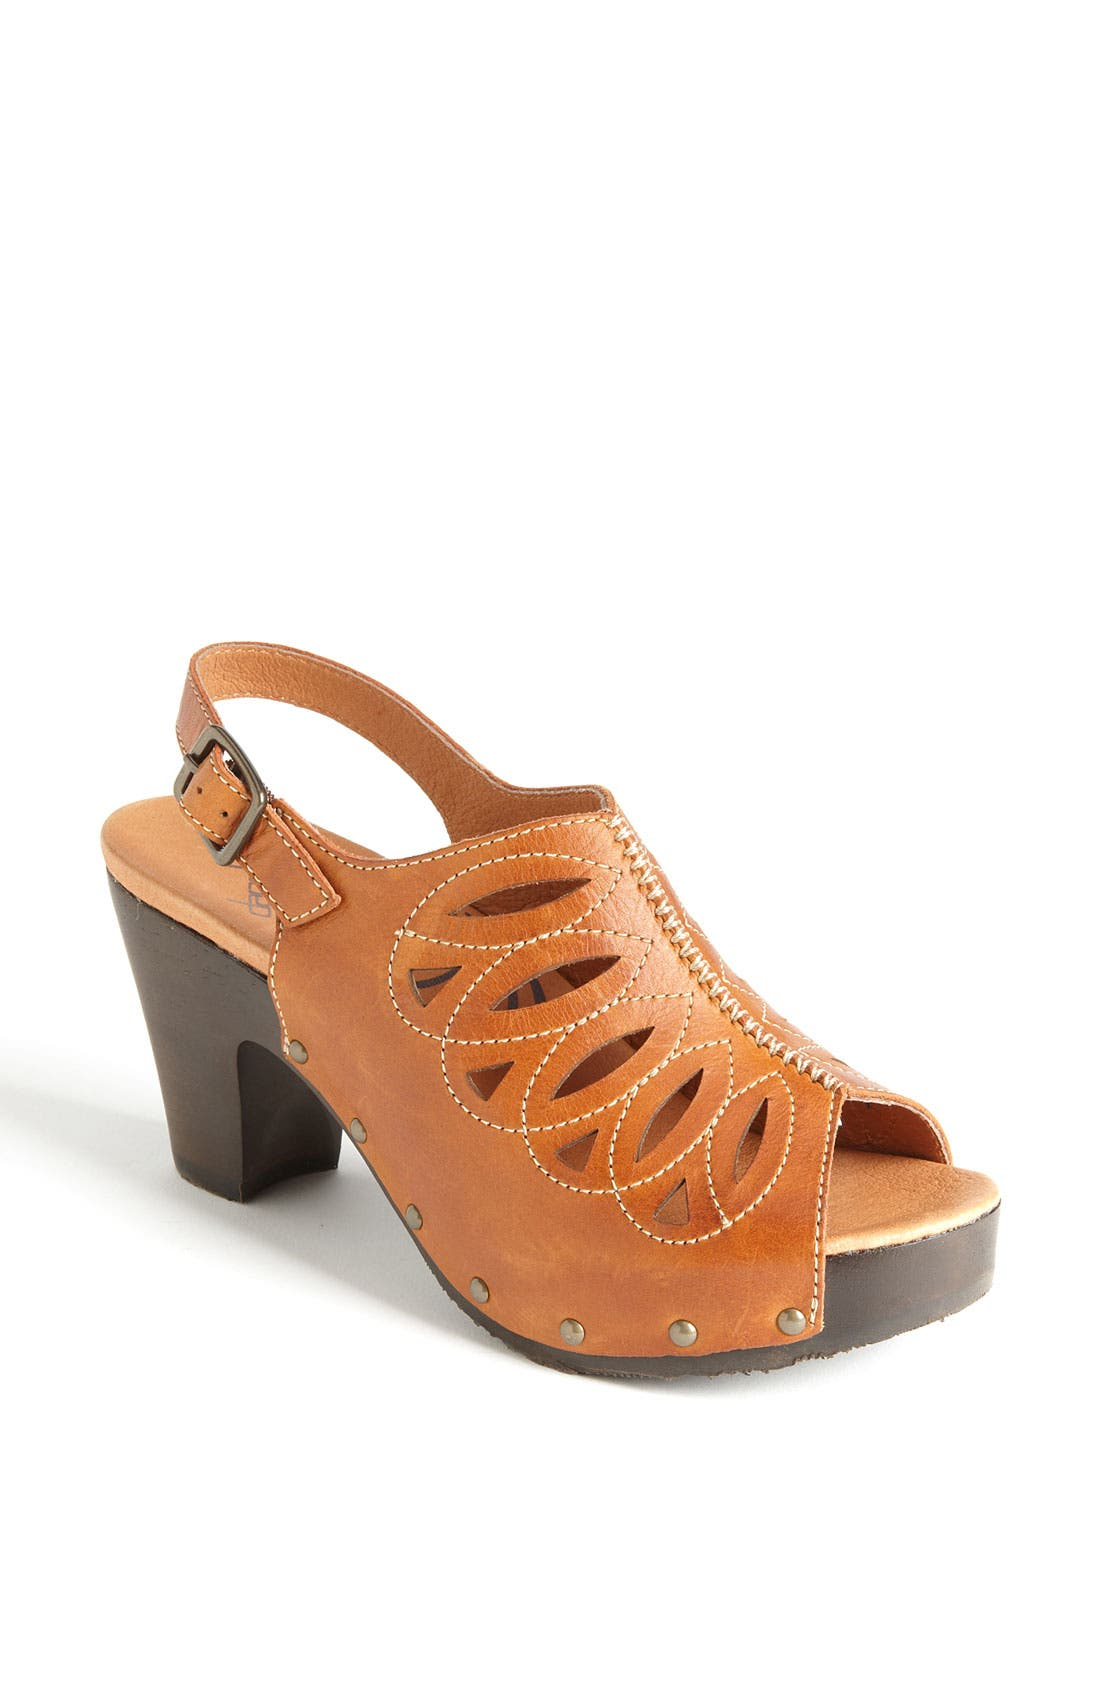 Alternate Image 1 Selected - Dansko 'Rowena' Clog Sandal